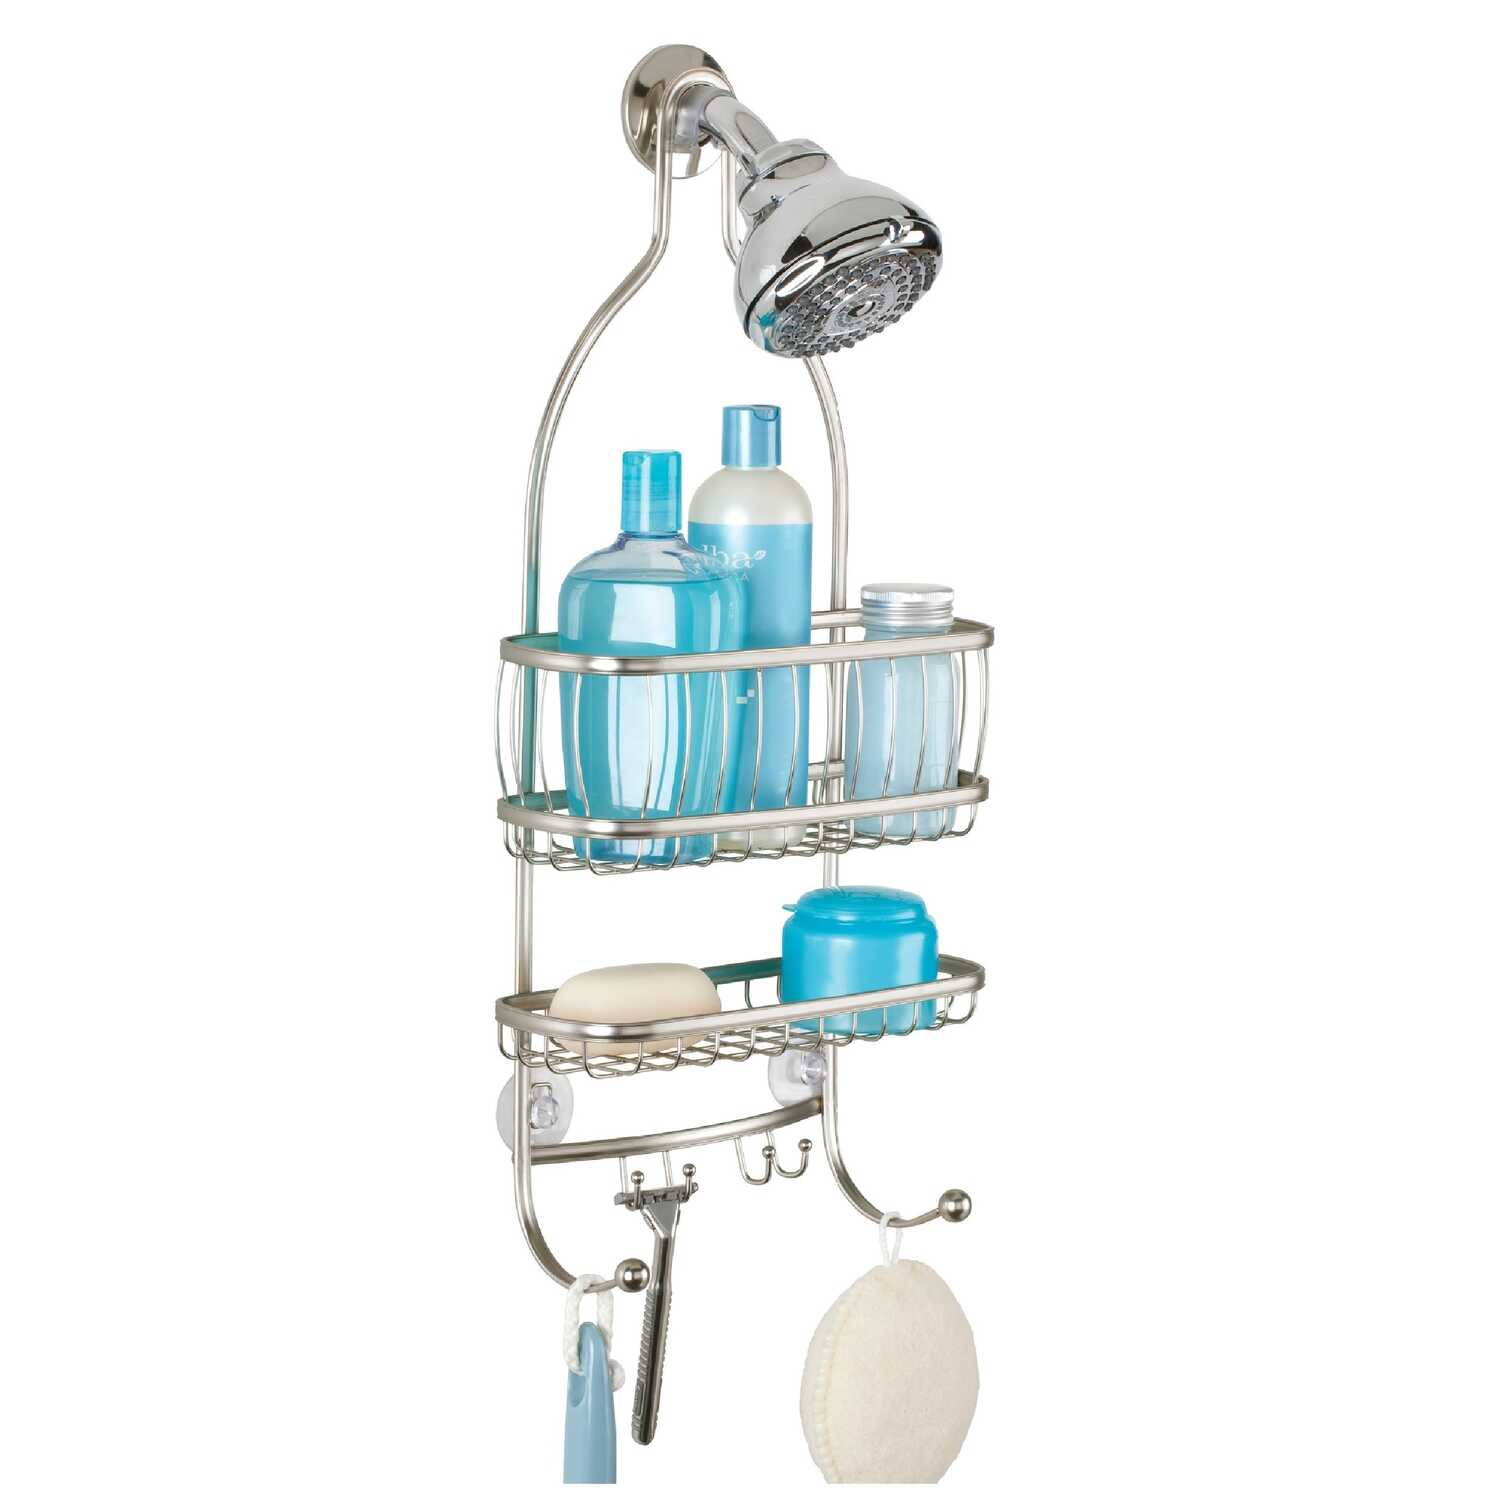 InterDesign  22  H x 4 in. W x 9-3/4 in. L Satin  Silver  Shower Caddy